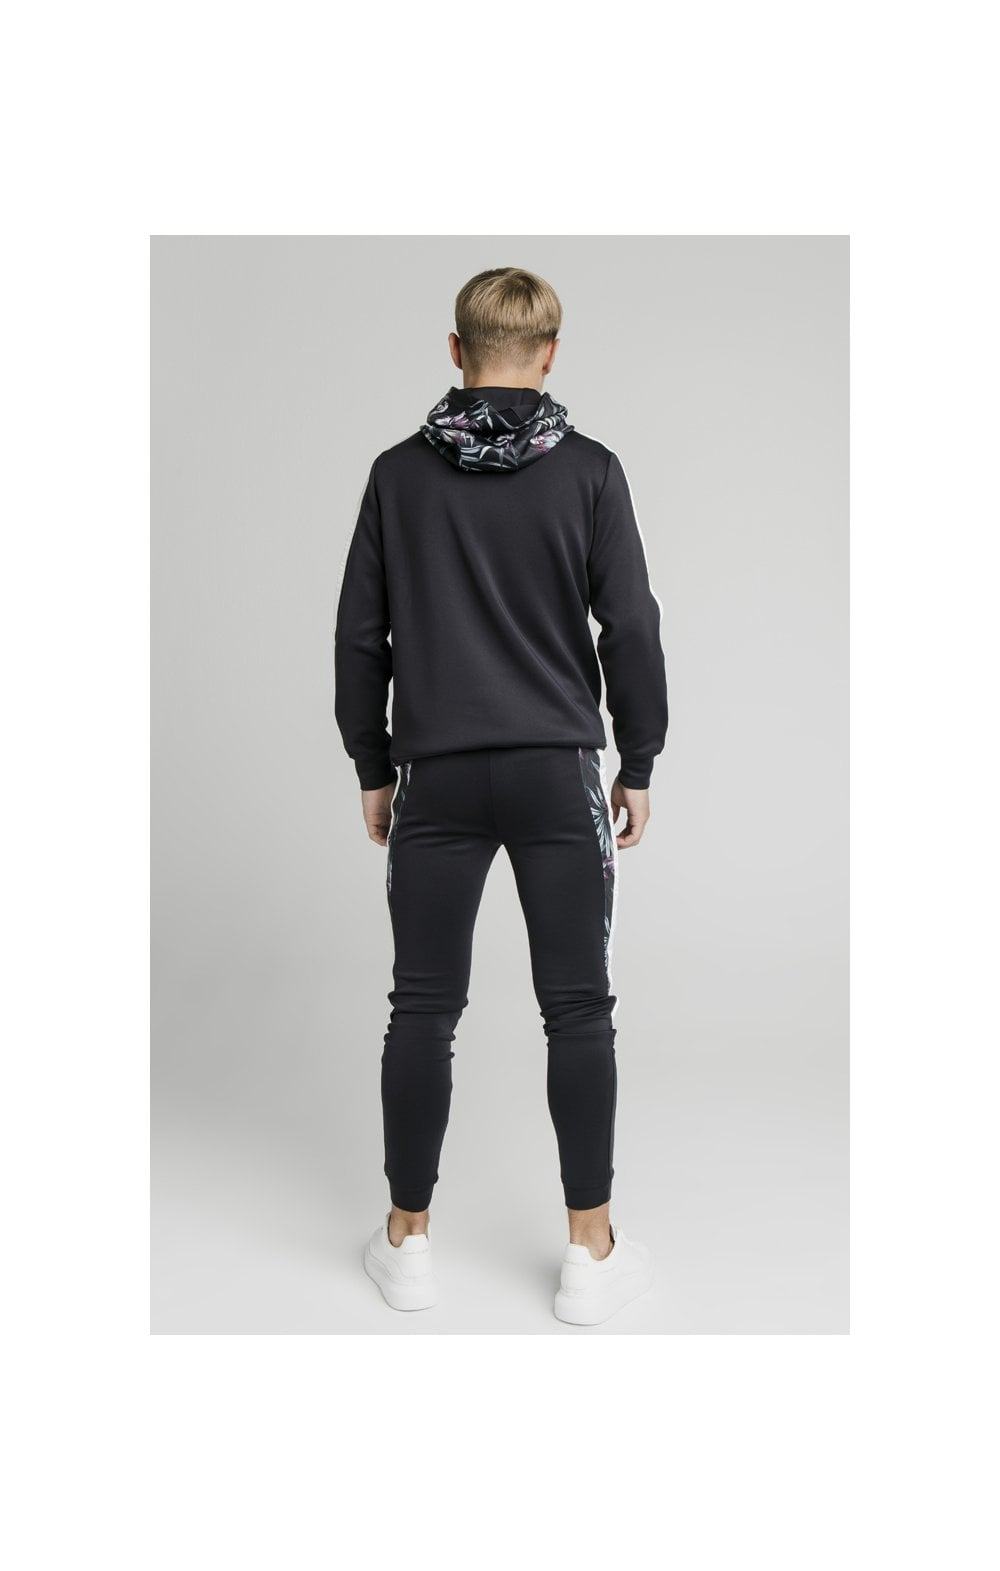 Load image into Gallery viewer, Illusive London Dark Tropical Taped Hoodie - Navy (6)